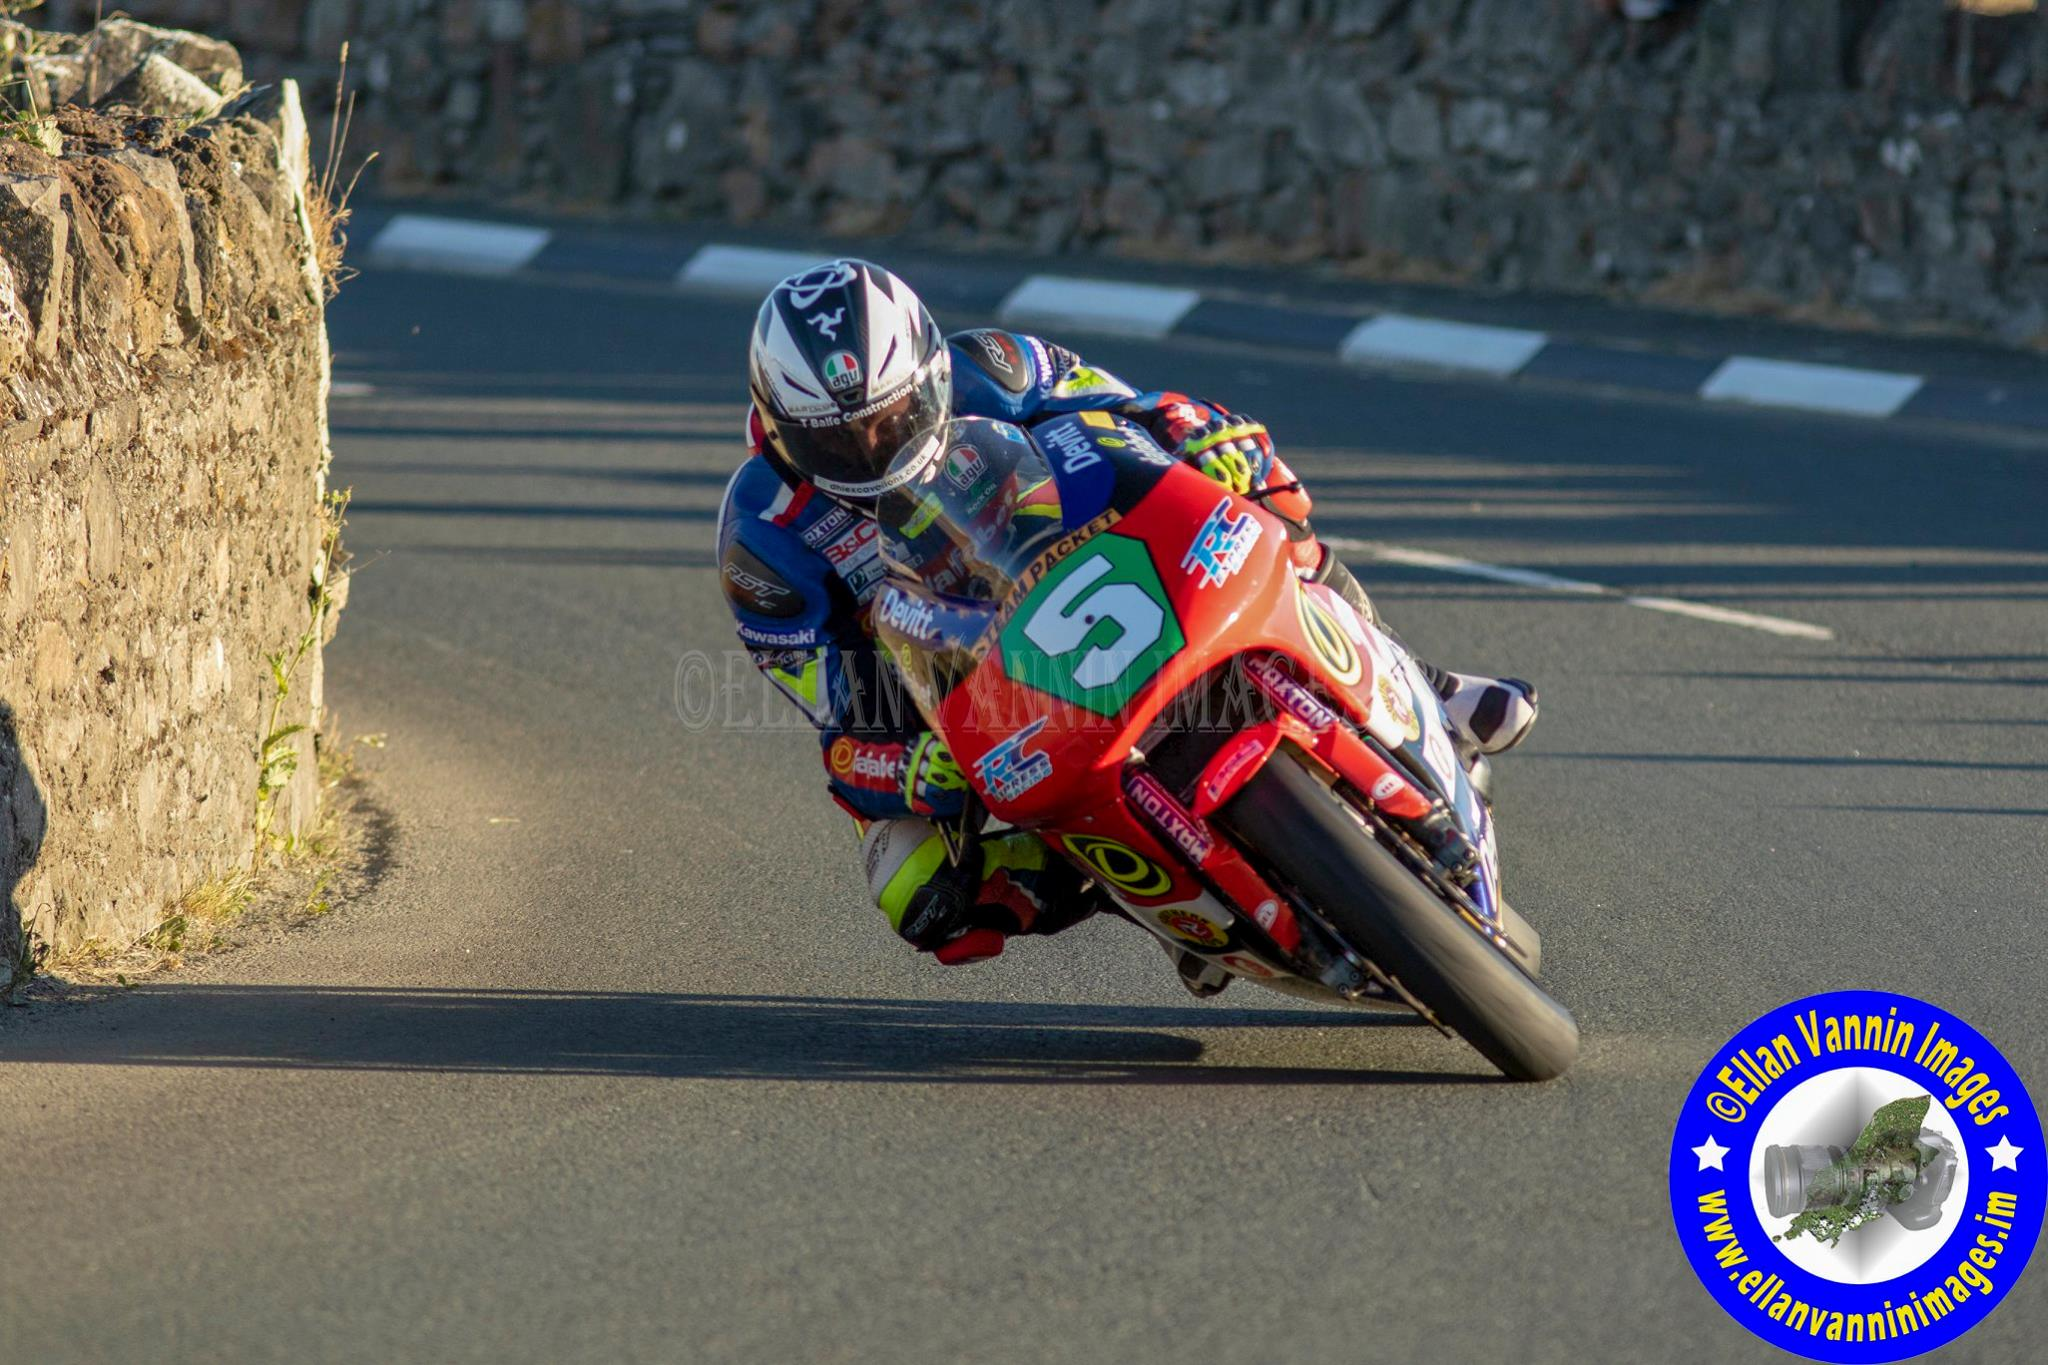 Southern 100: Relentless Lintin Takes Opening Super Twins Race